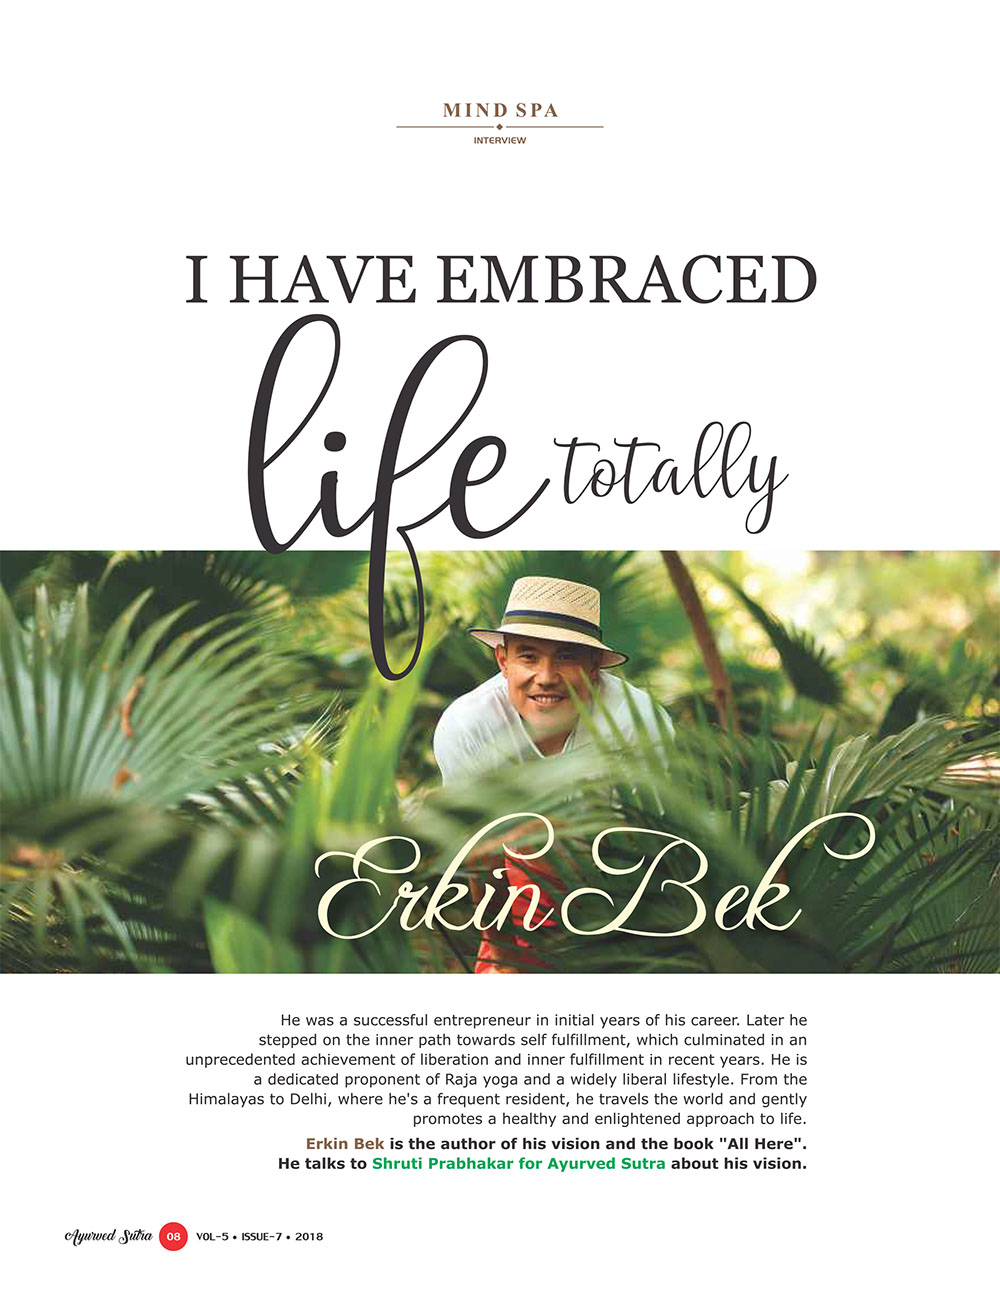 Ayurvedsutra Vol 05 issue 07 10 - I have embraced life totally